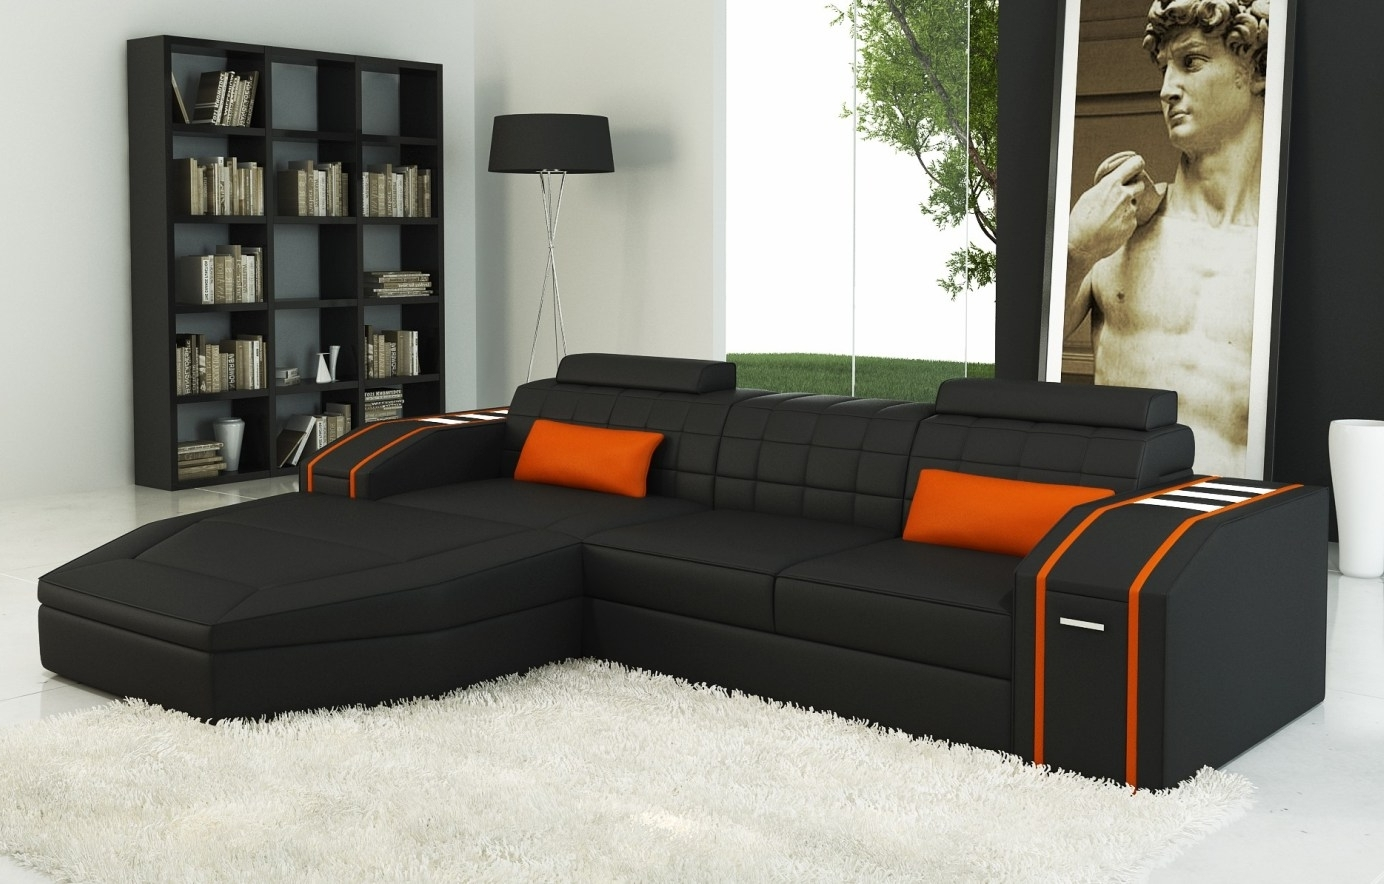 Valdosta Ga Sectional Sofas In Trendy Furniture : Cool Sofas For Sale  Excellent Design Ideas 19